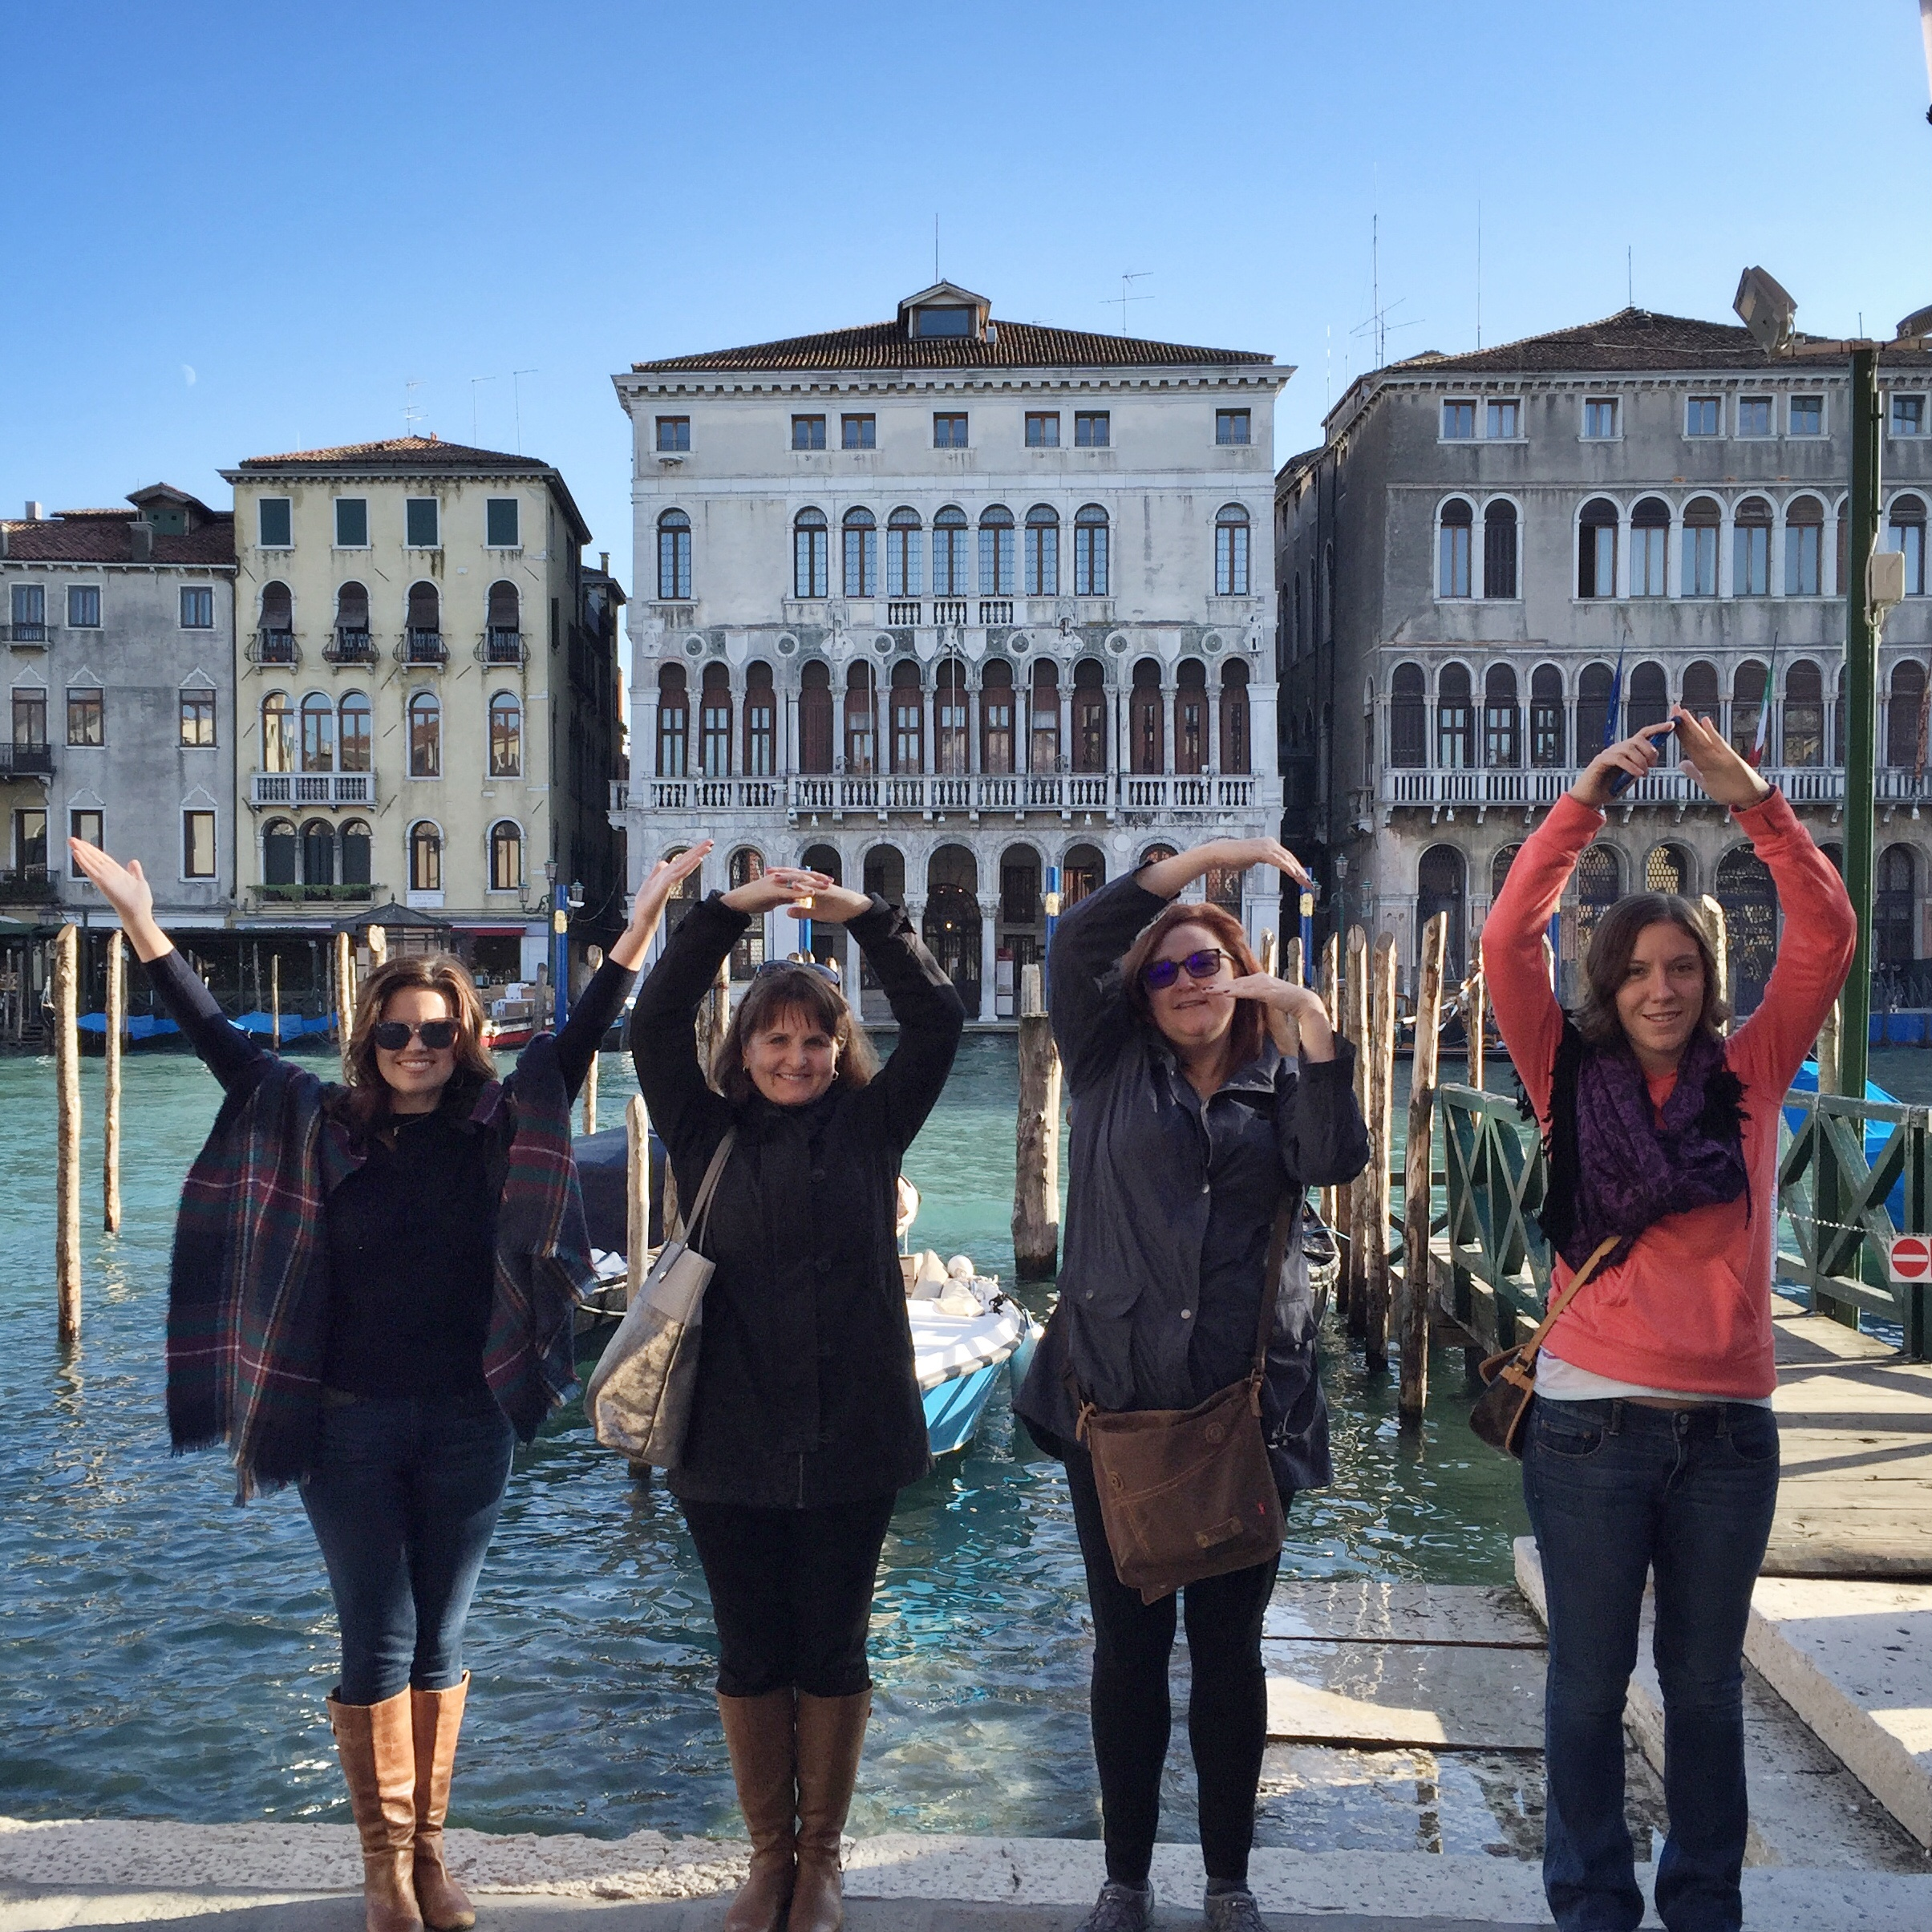 Y.O.G.A by the canals | EAT.PRAY.MOVE Yoga | Venice, Italy